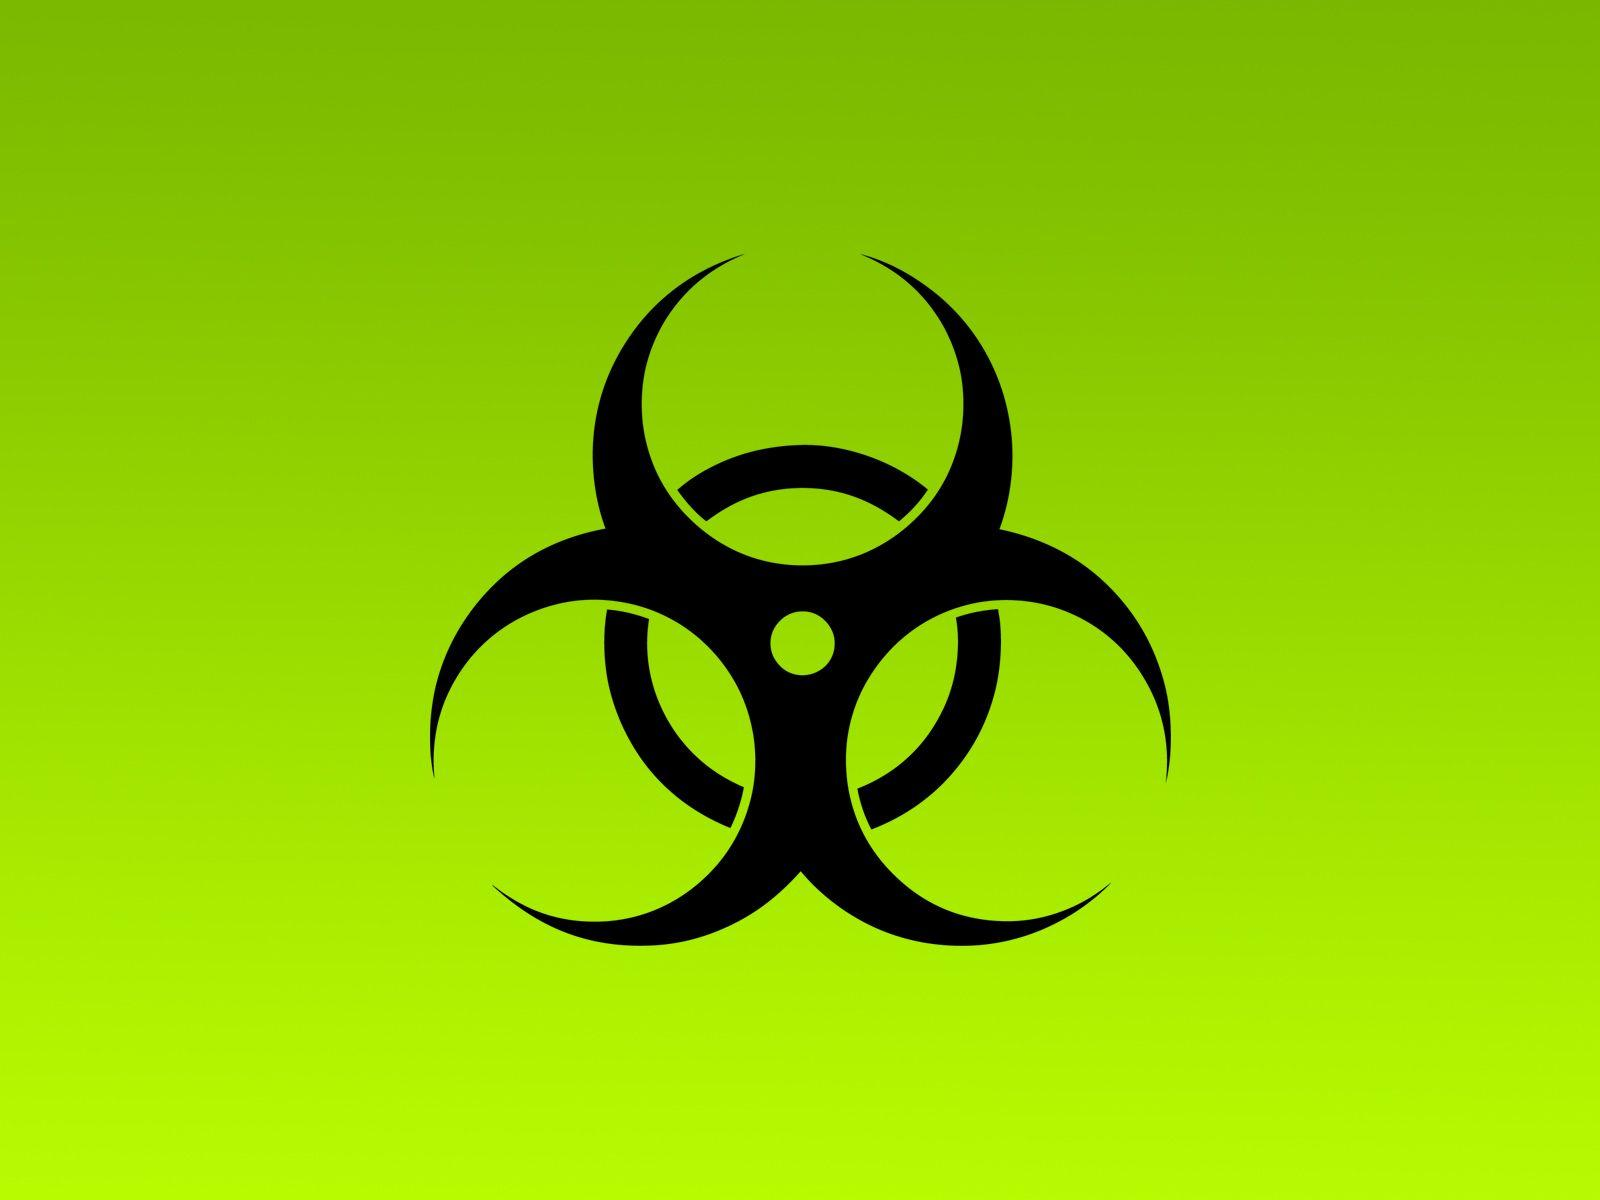 Download Box Biohazard Radioactive Symbol Wallpaper 1600x1200 | HD ...